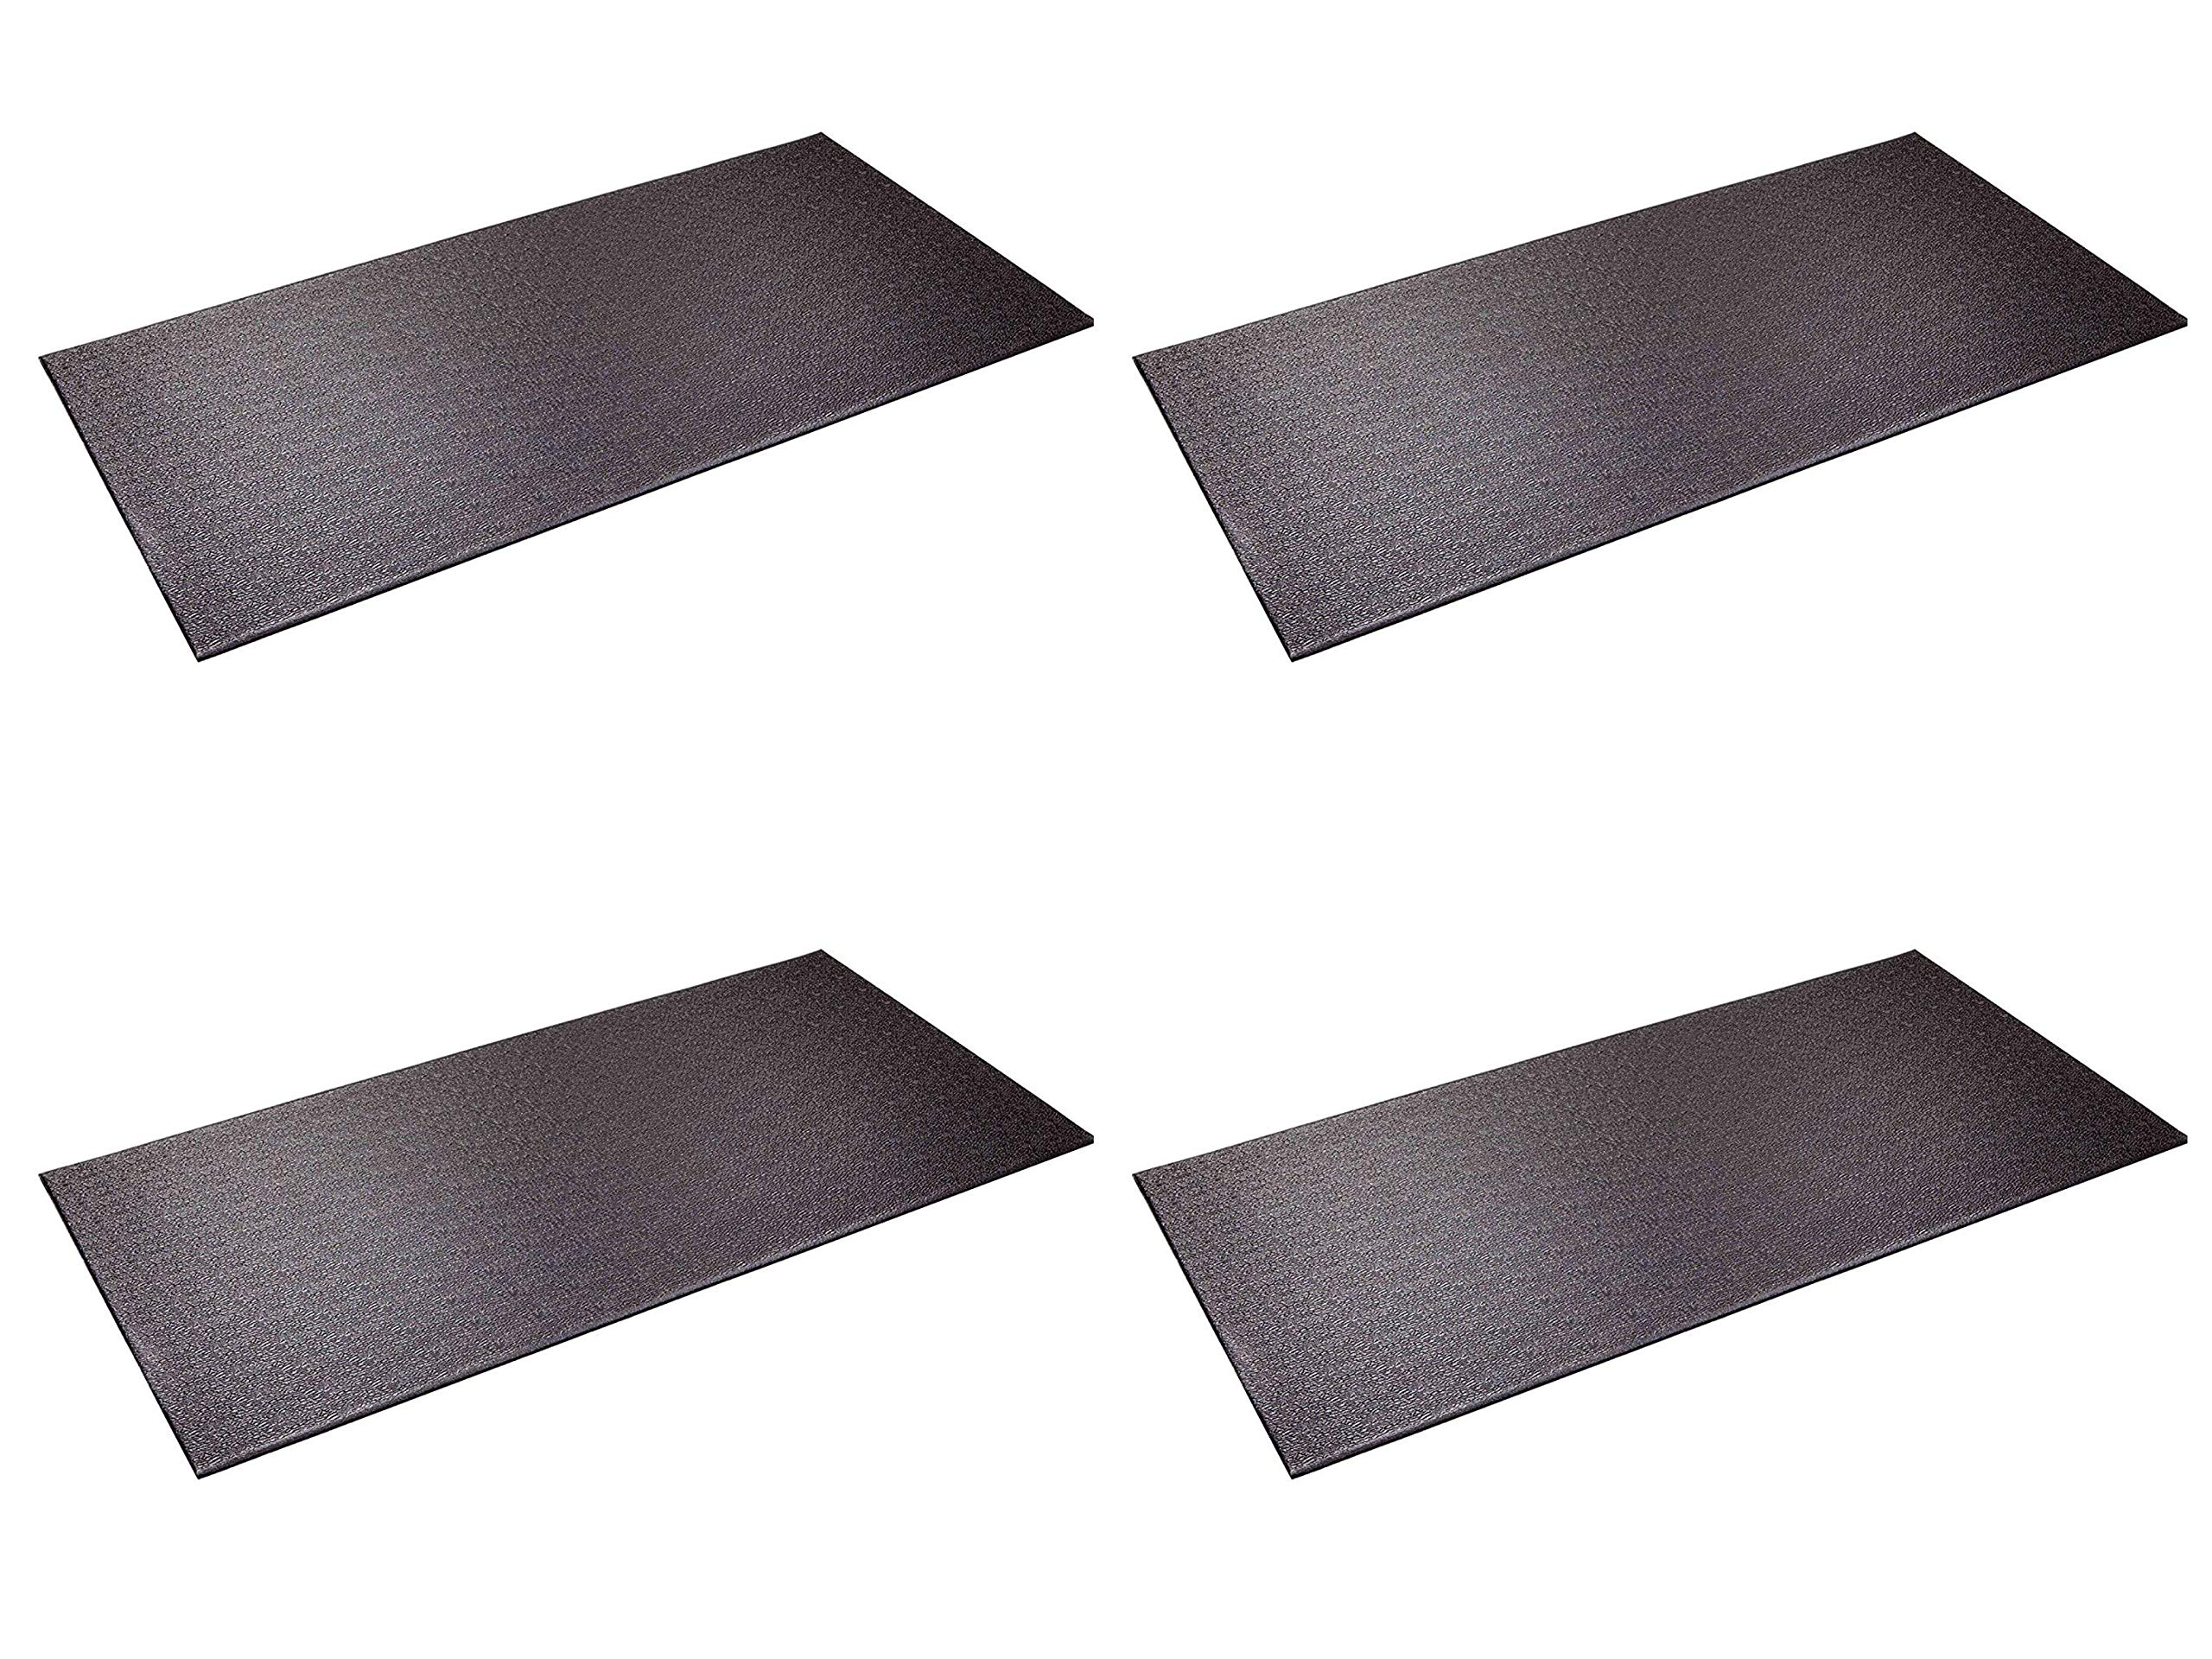 SuperMats Heavy Duty Equipment Mat 13GS Made in U.S.A. for Indoor Cycles Recumbent Bikes Upright Exercise Bikes and Steppers (2.5 Feet x 5 Feet) (30-Inch x 60-Inch) (Fоur Расk)